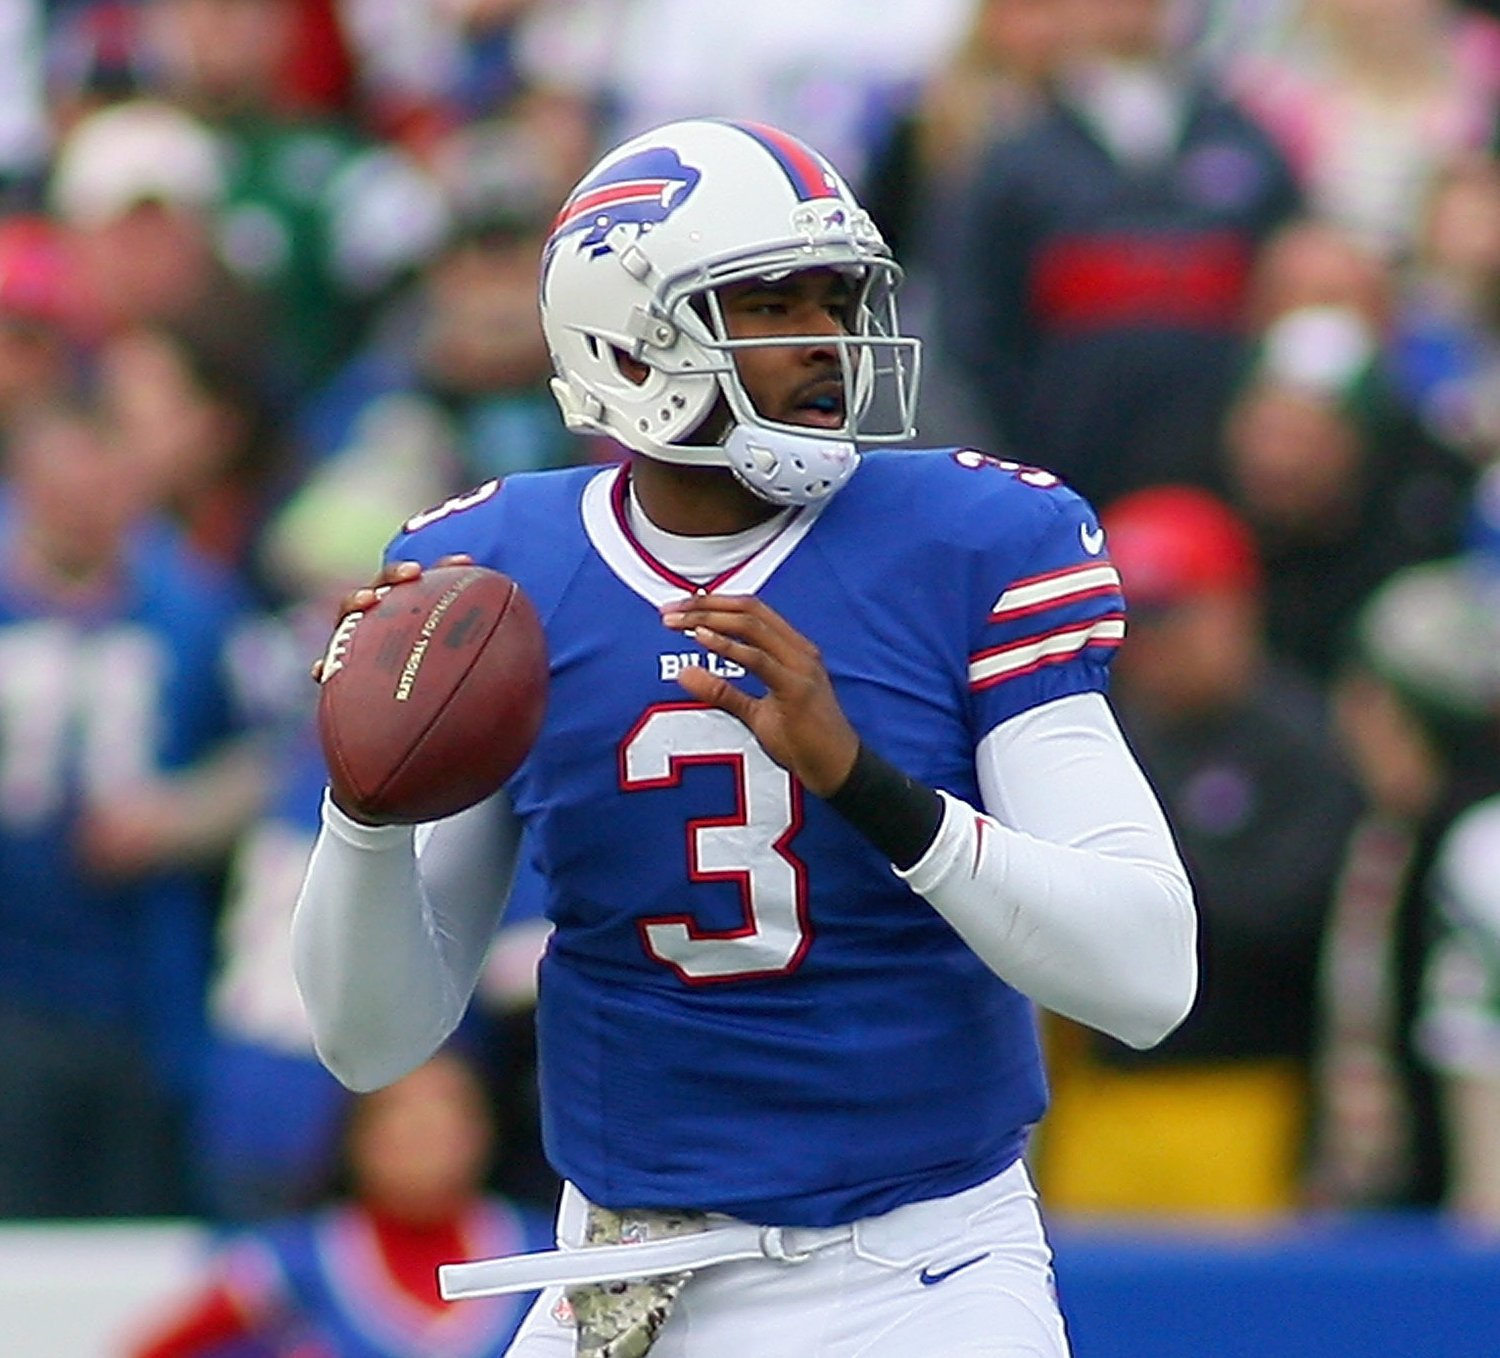 EJ Manuel Shines in Win over Jets, a Sign of Things to Come | Bleacher Report